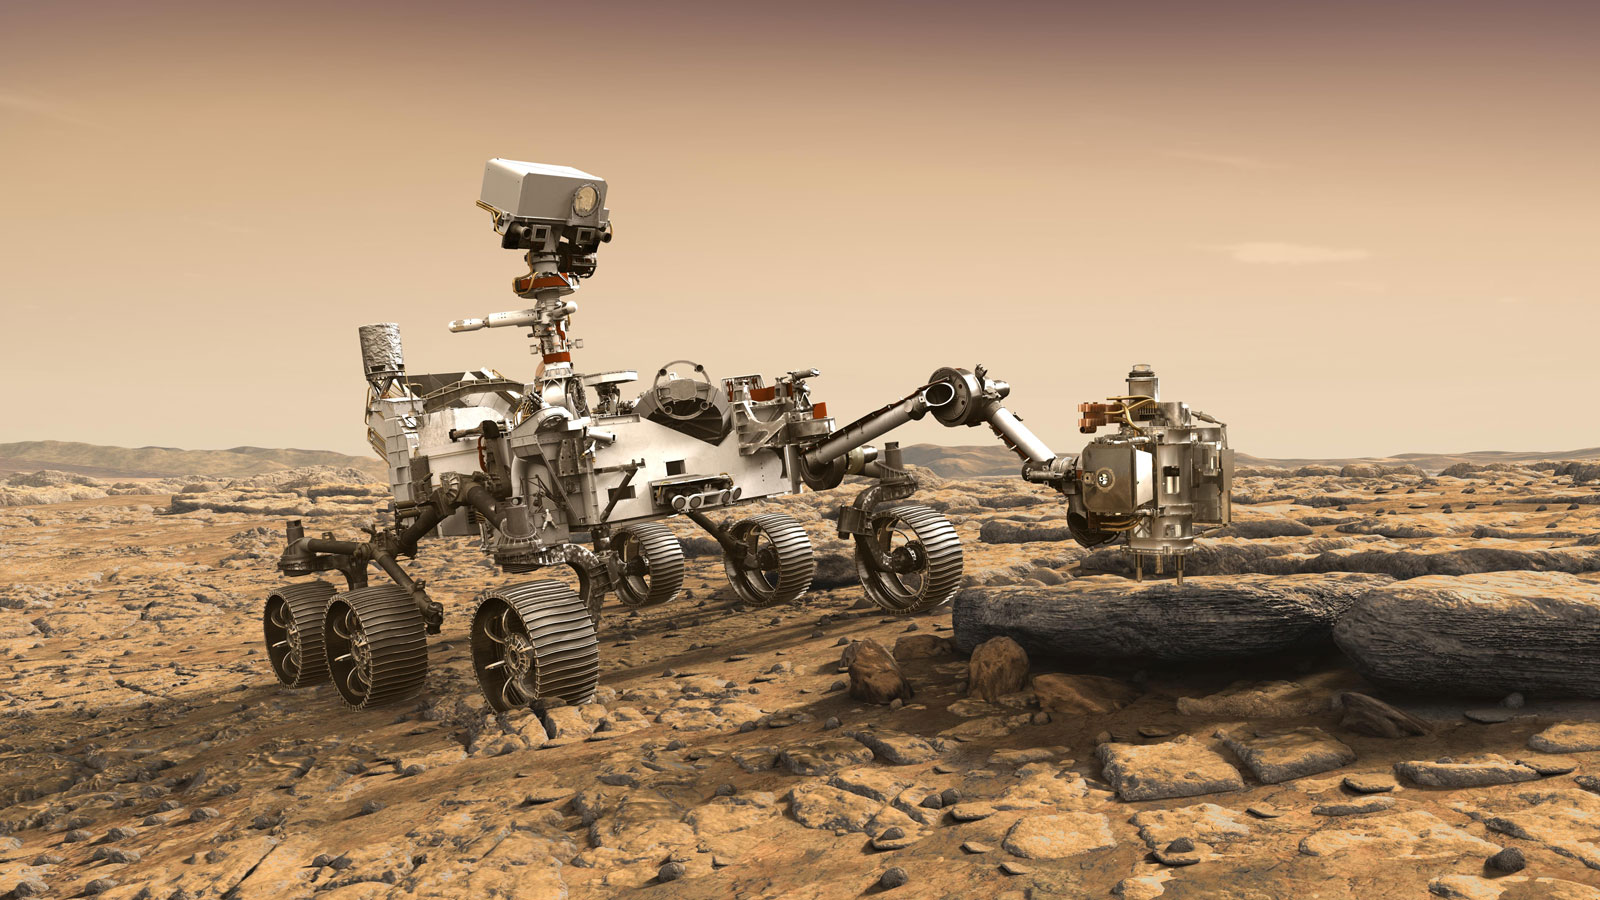 slide 1 - This artist's rendition depicts NASA's Mars 2020 rover studying a Mars rock outrcrop.